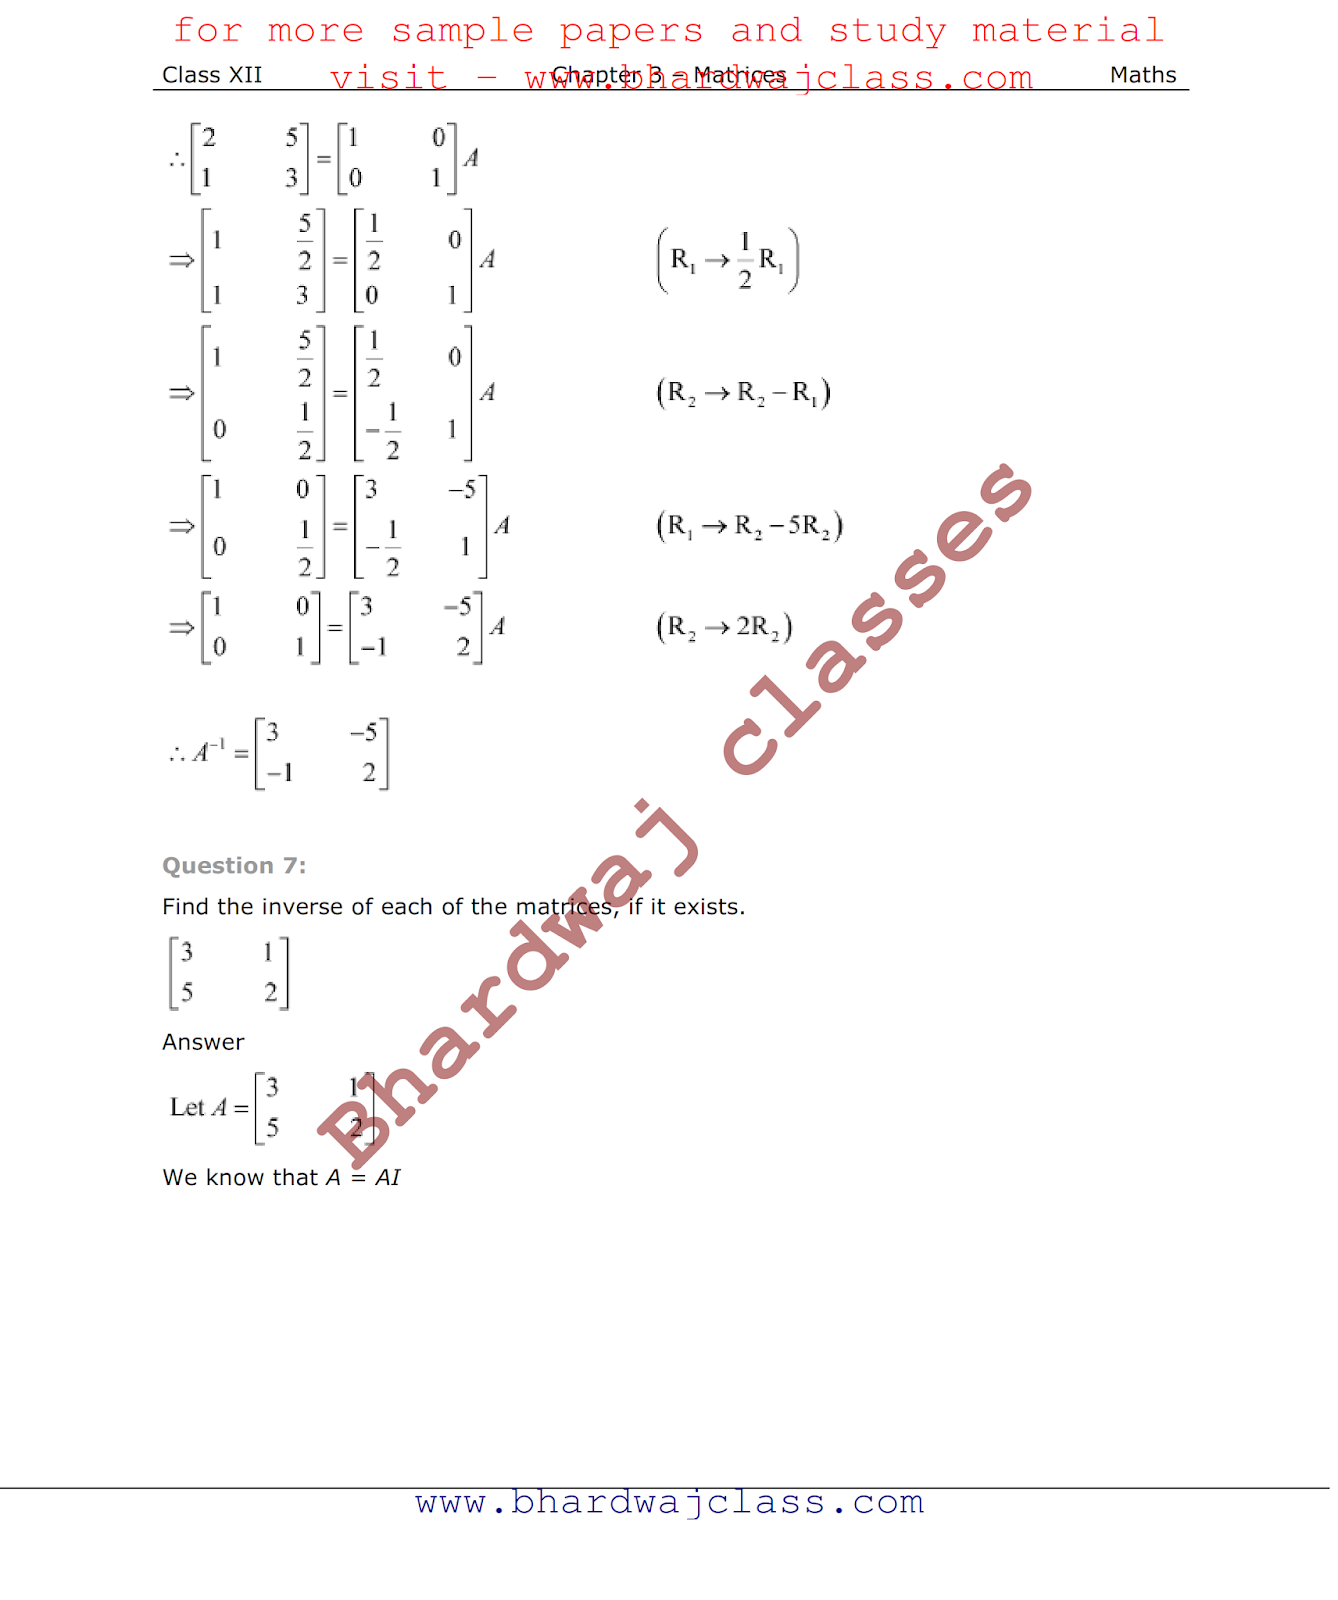 Class 12 Maths NCERT Solutions chapter 3 matrix